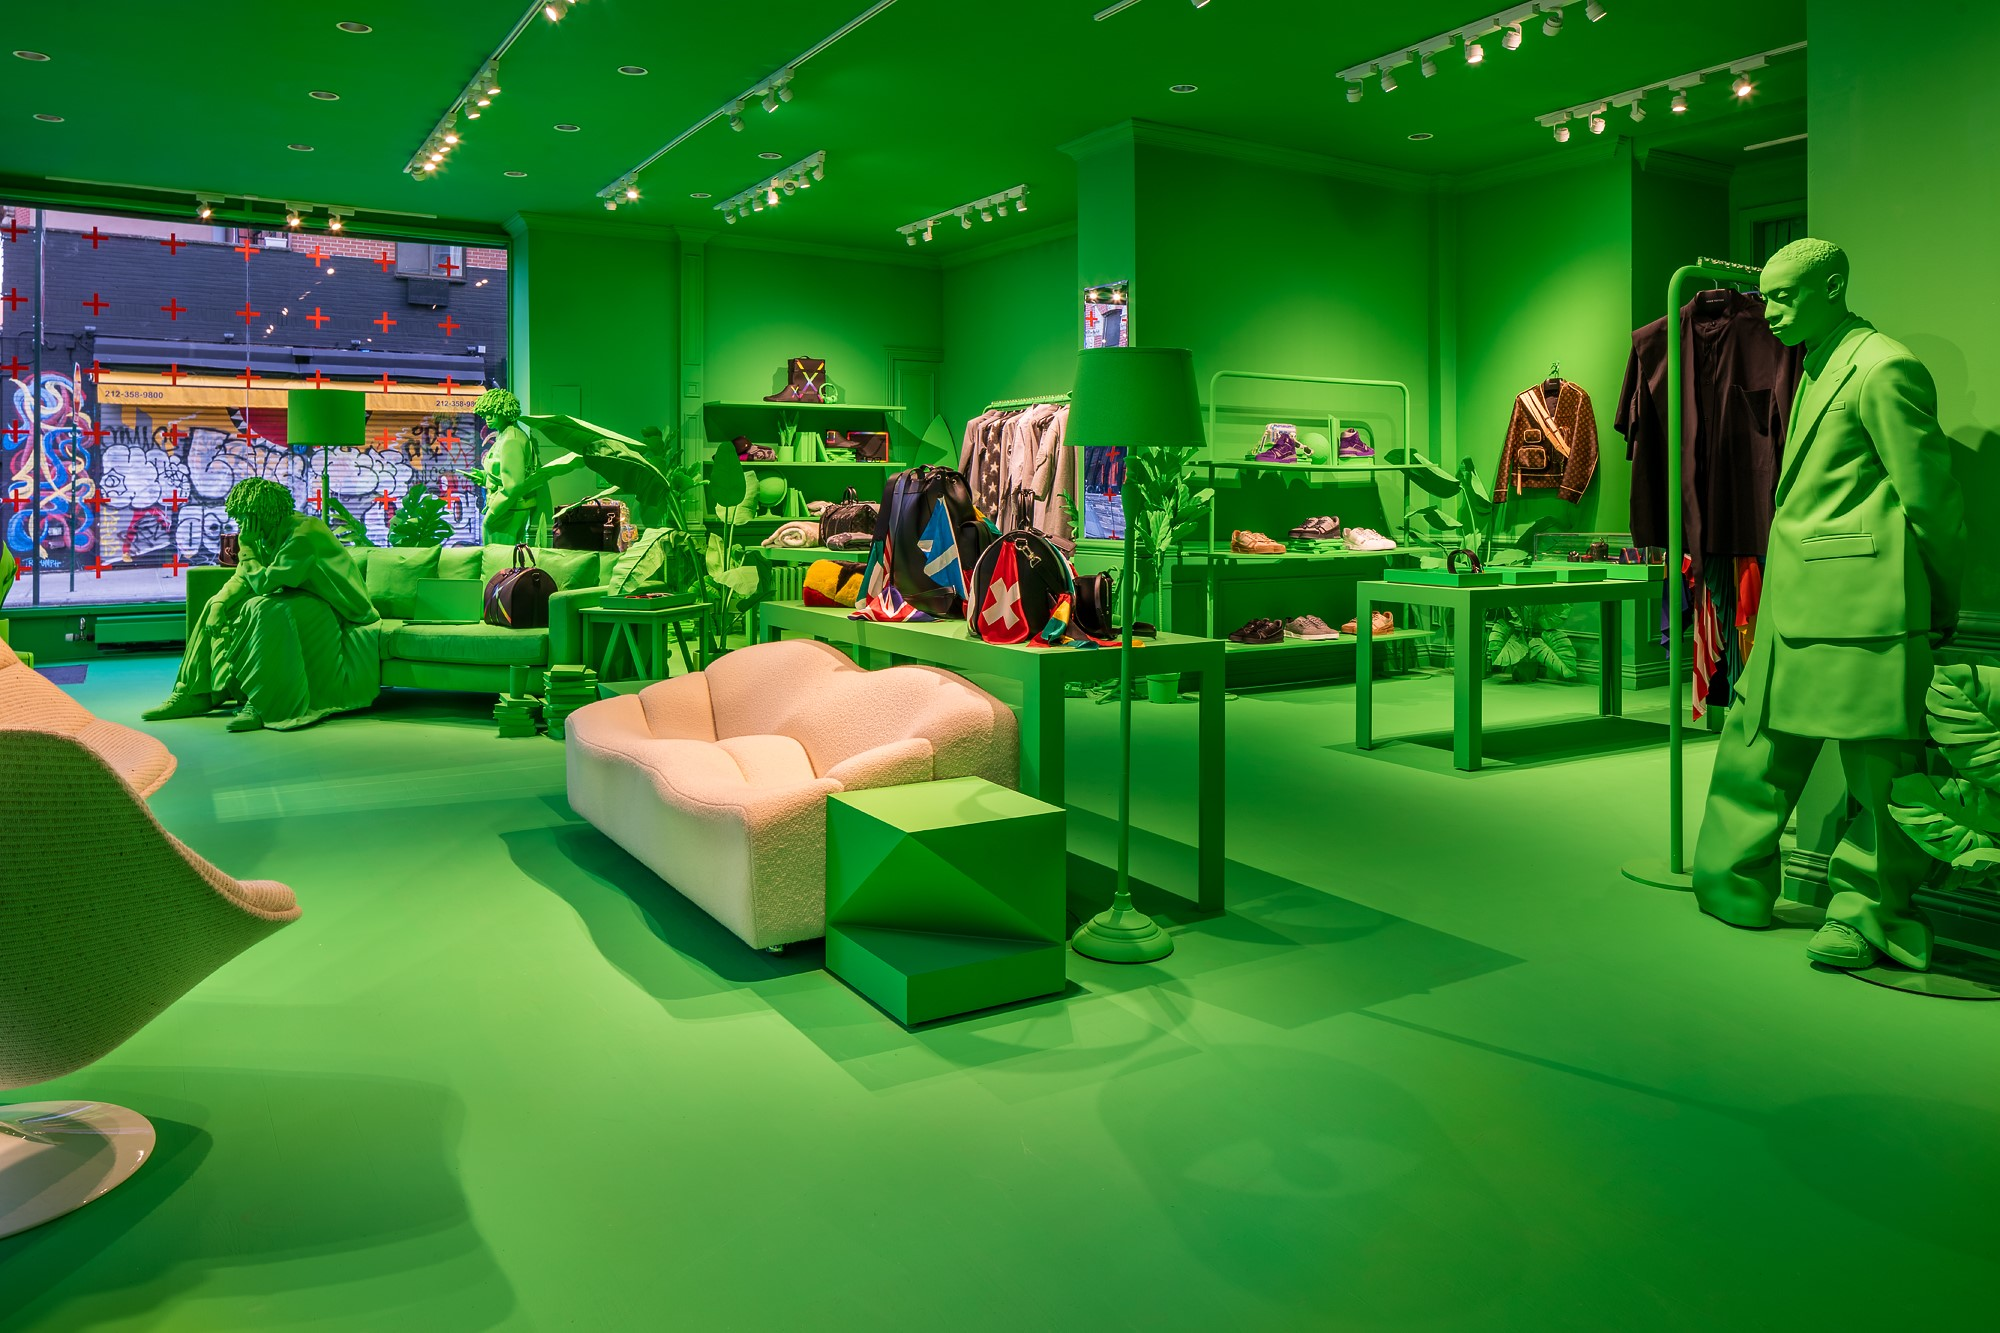 Louis Vuitton Launches Neon Green Men's Pop-up in NYC Lower East Side